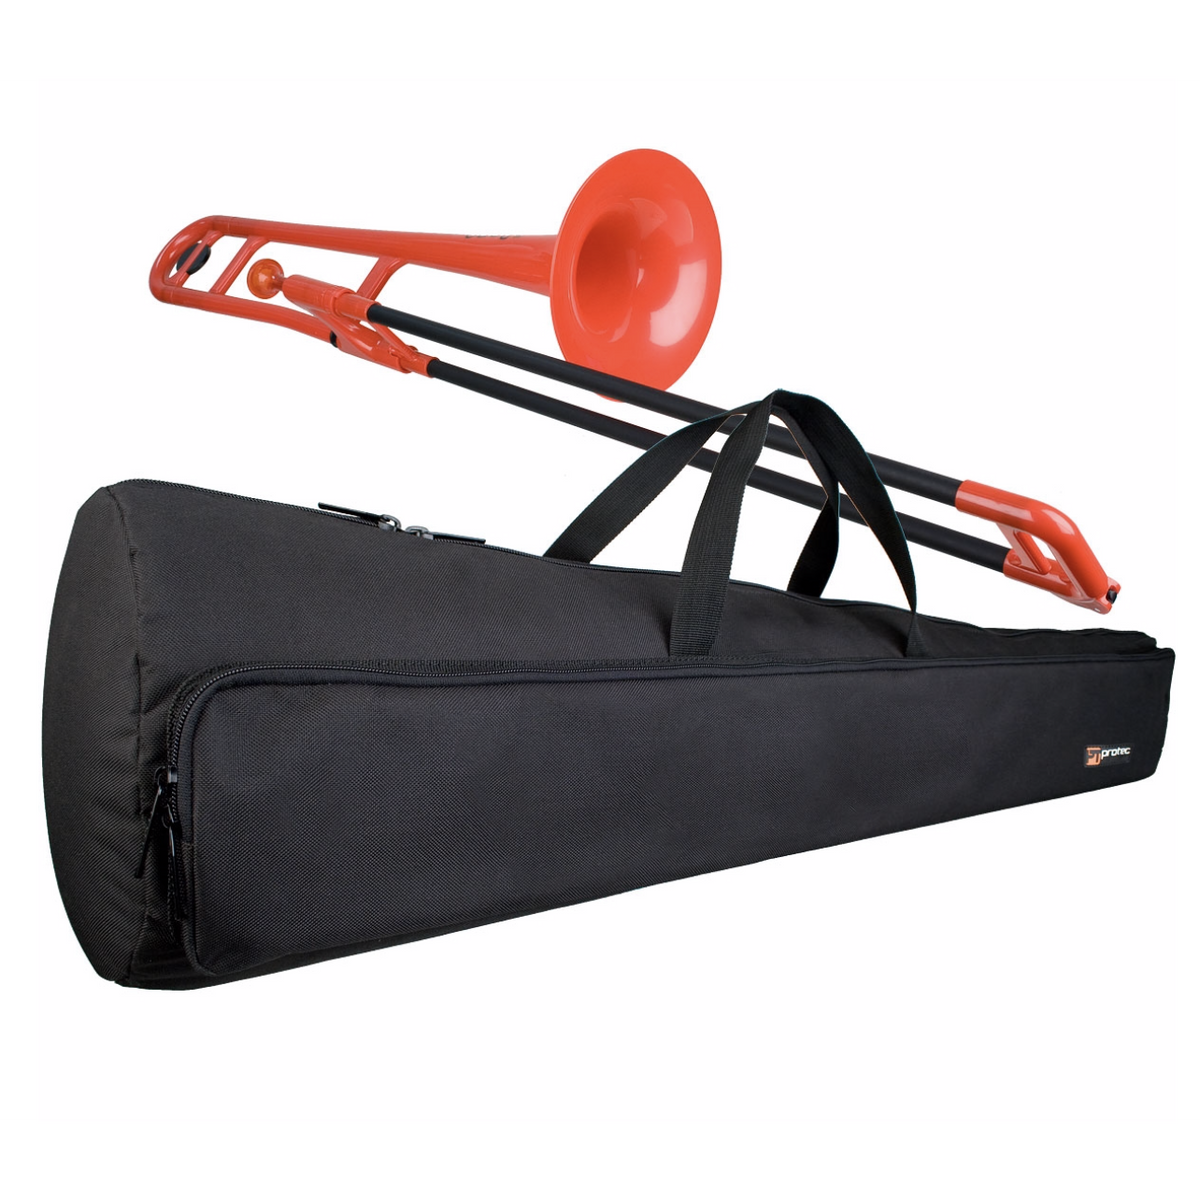 Protec - Trombone Gig Bag for pBone-Case-Protec-Music Elements